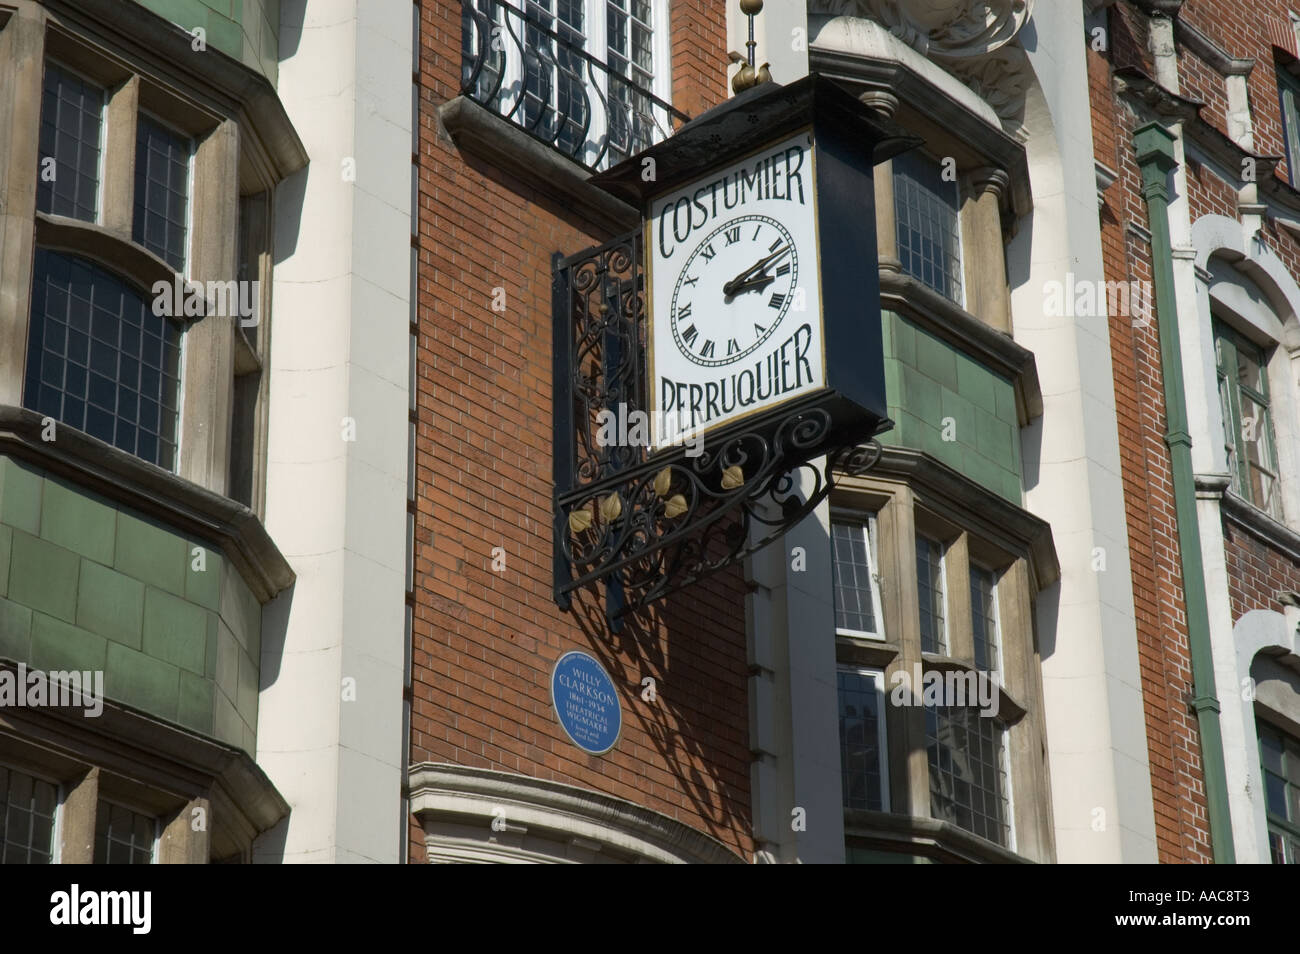 Art nouveau building in Wardour Street London UK Former home of Willy Clarkson a theatrical wigmaker. Stock Photo